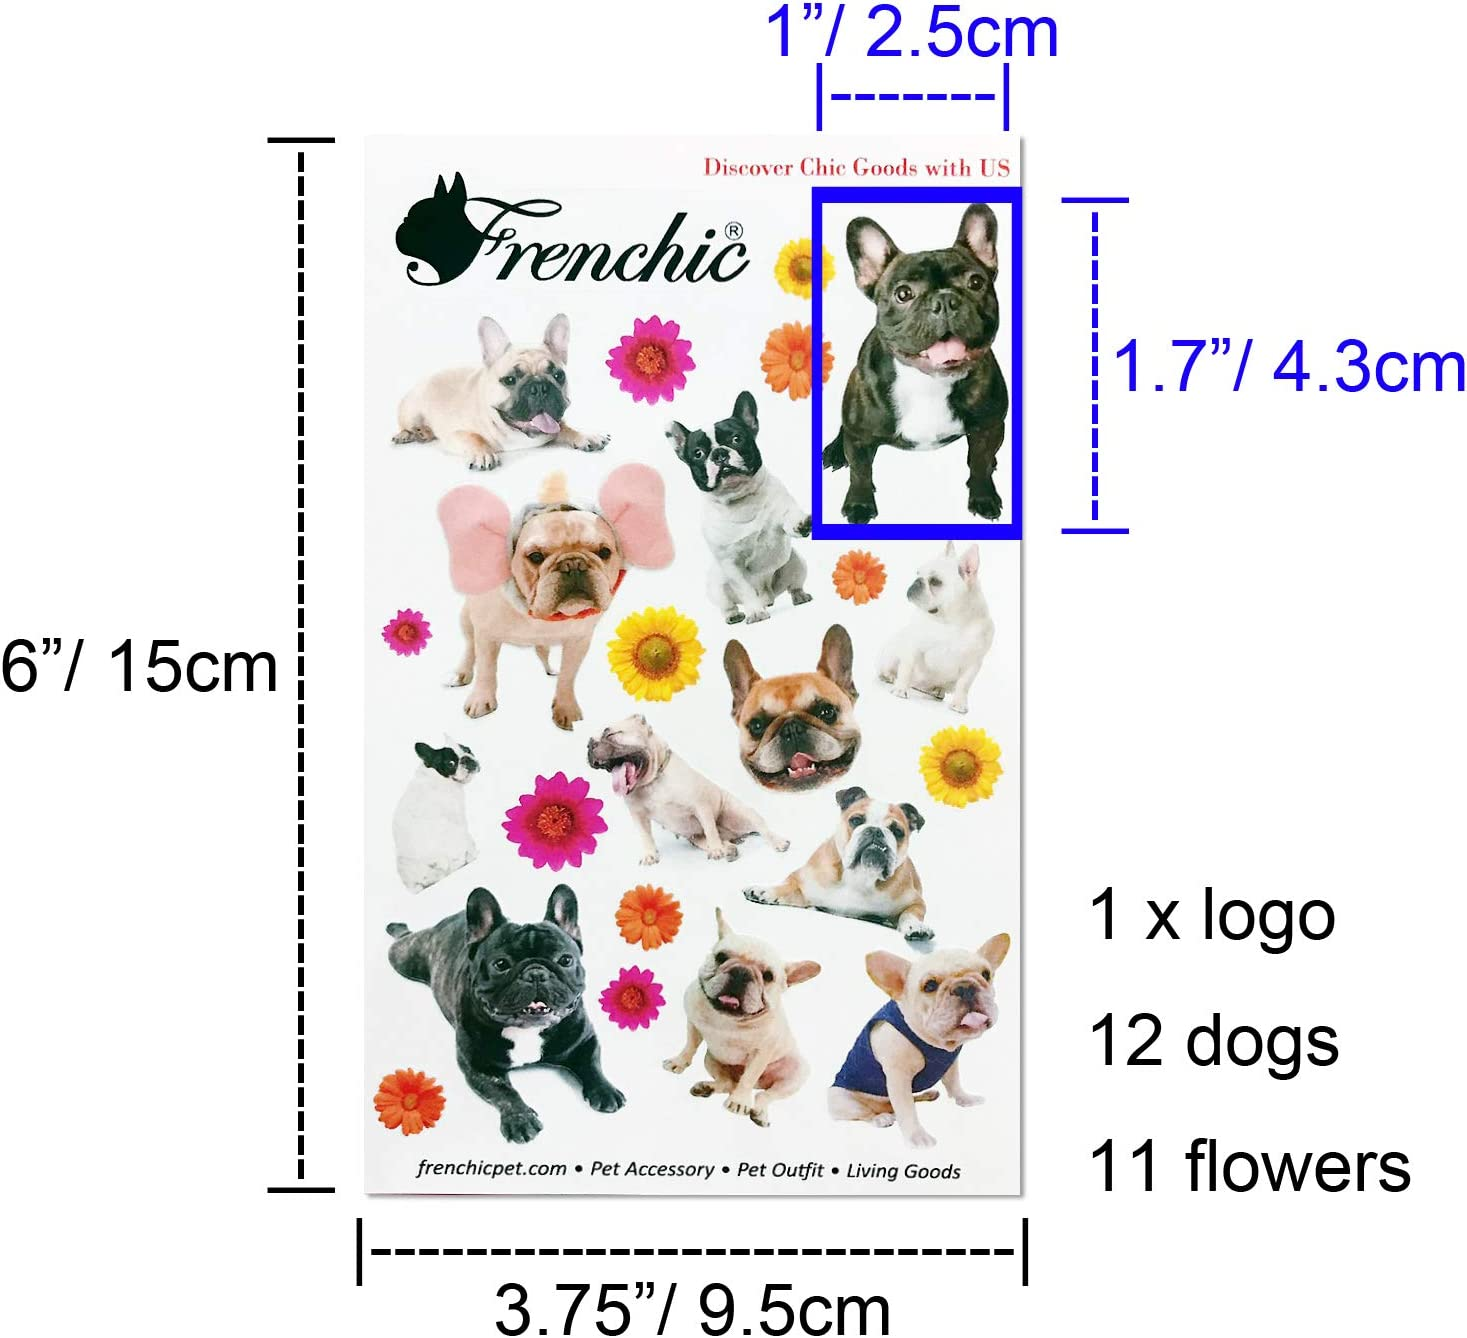 French Bulldog Photo Vivid Image Sticker Kawaii Dogs for paper craft and agenda or decoration Good seals